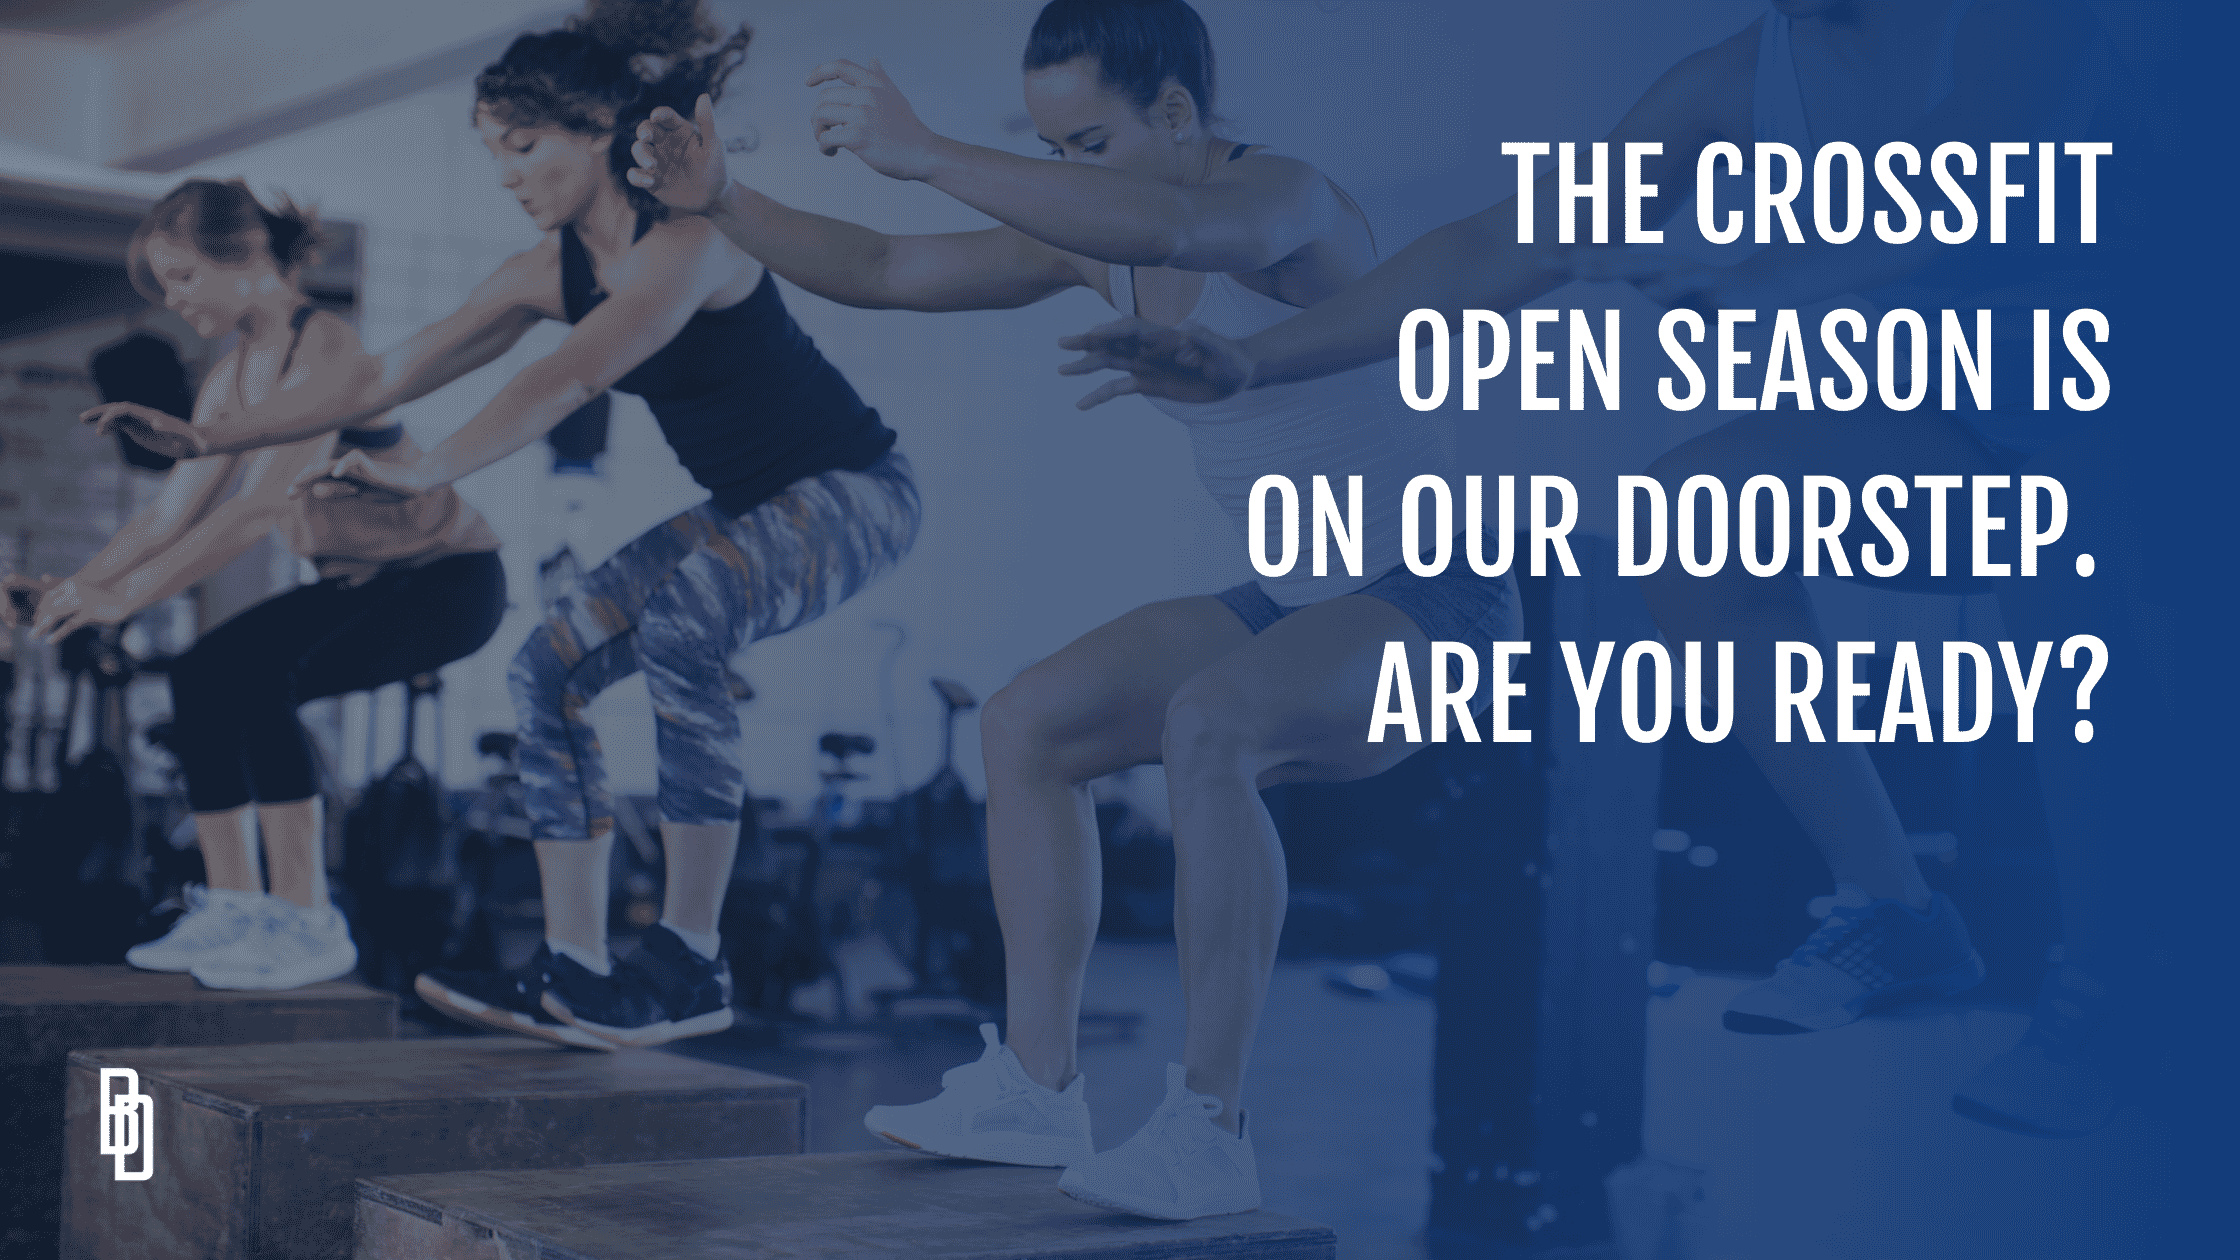 The CrossFit Open season is on our doorstep. ARE YOU READY?